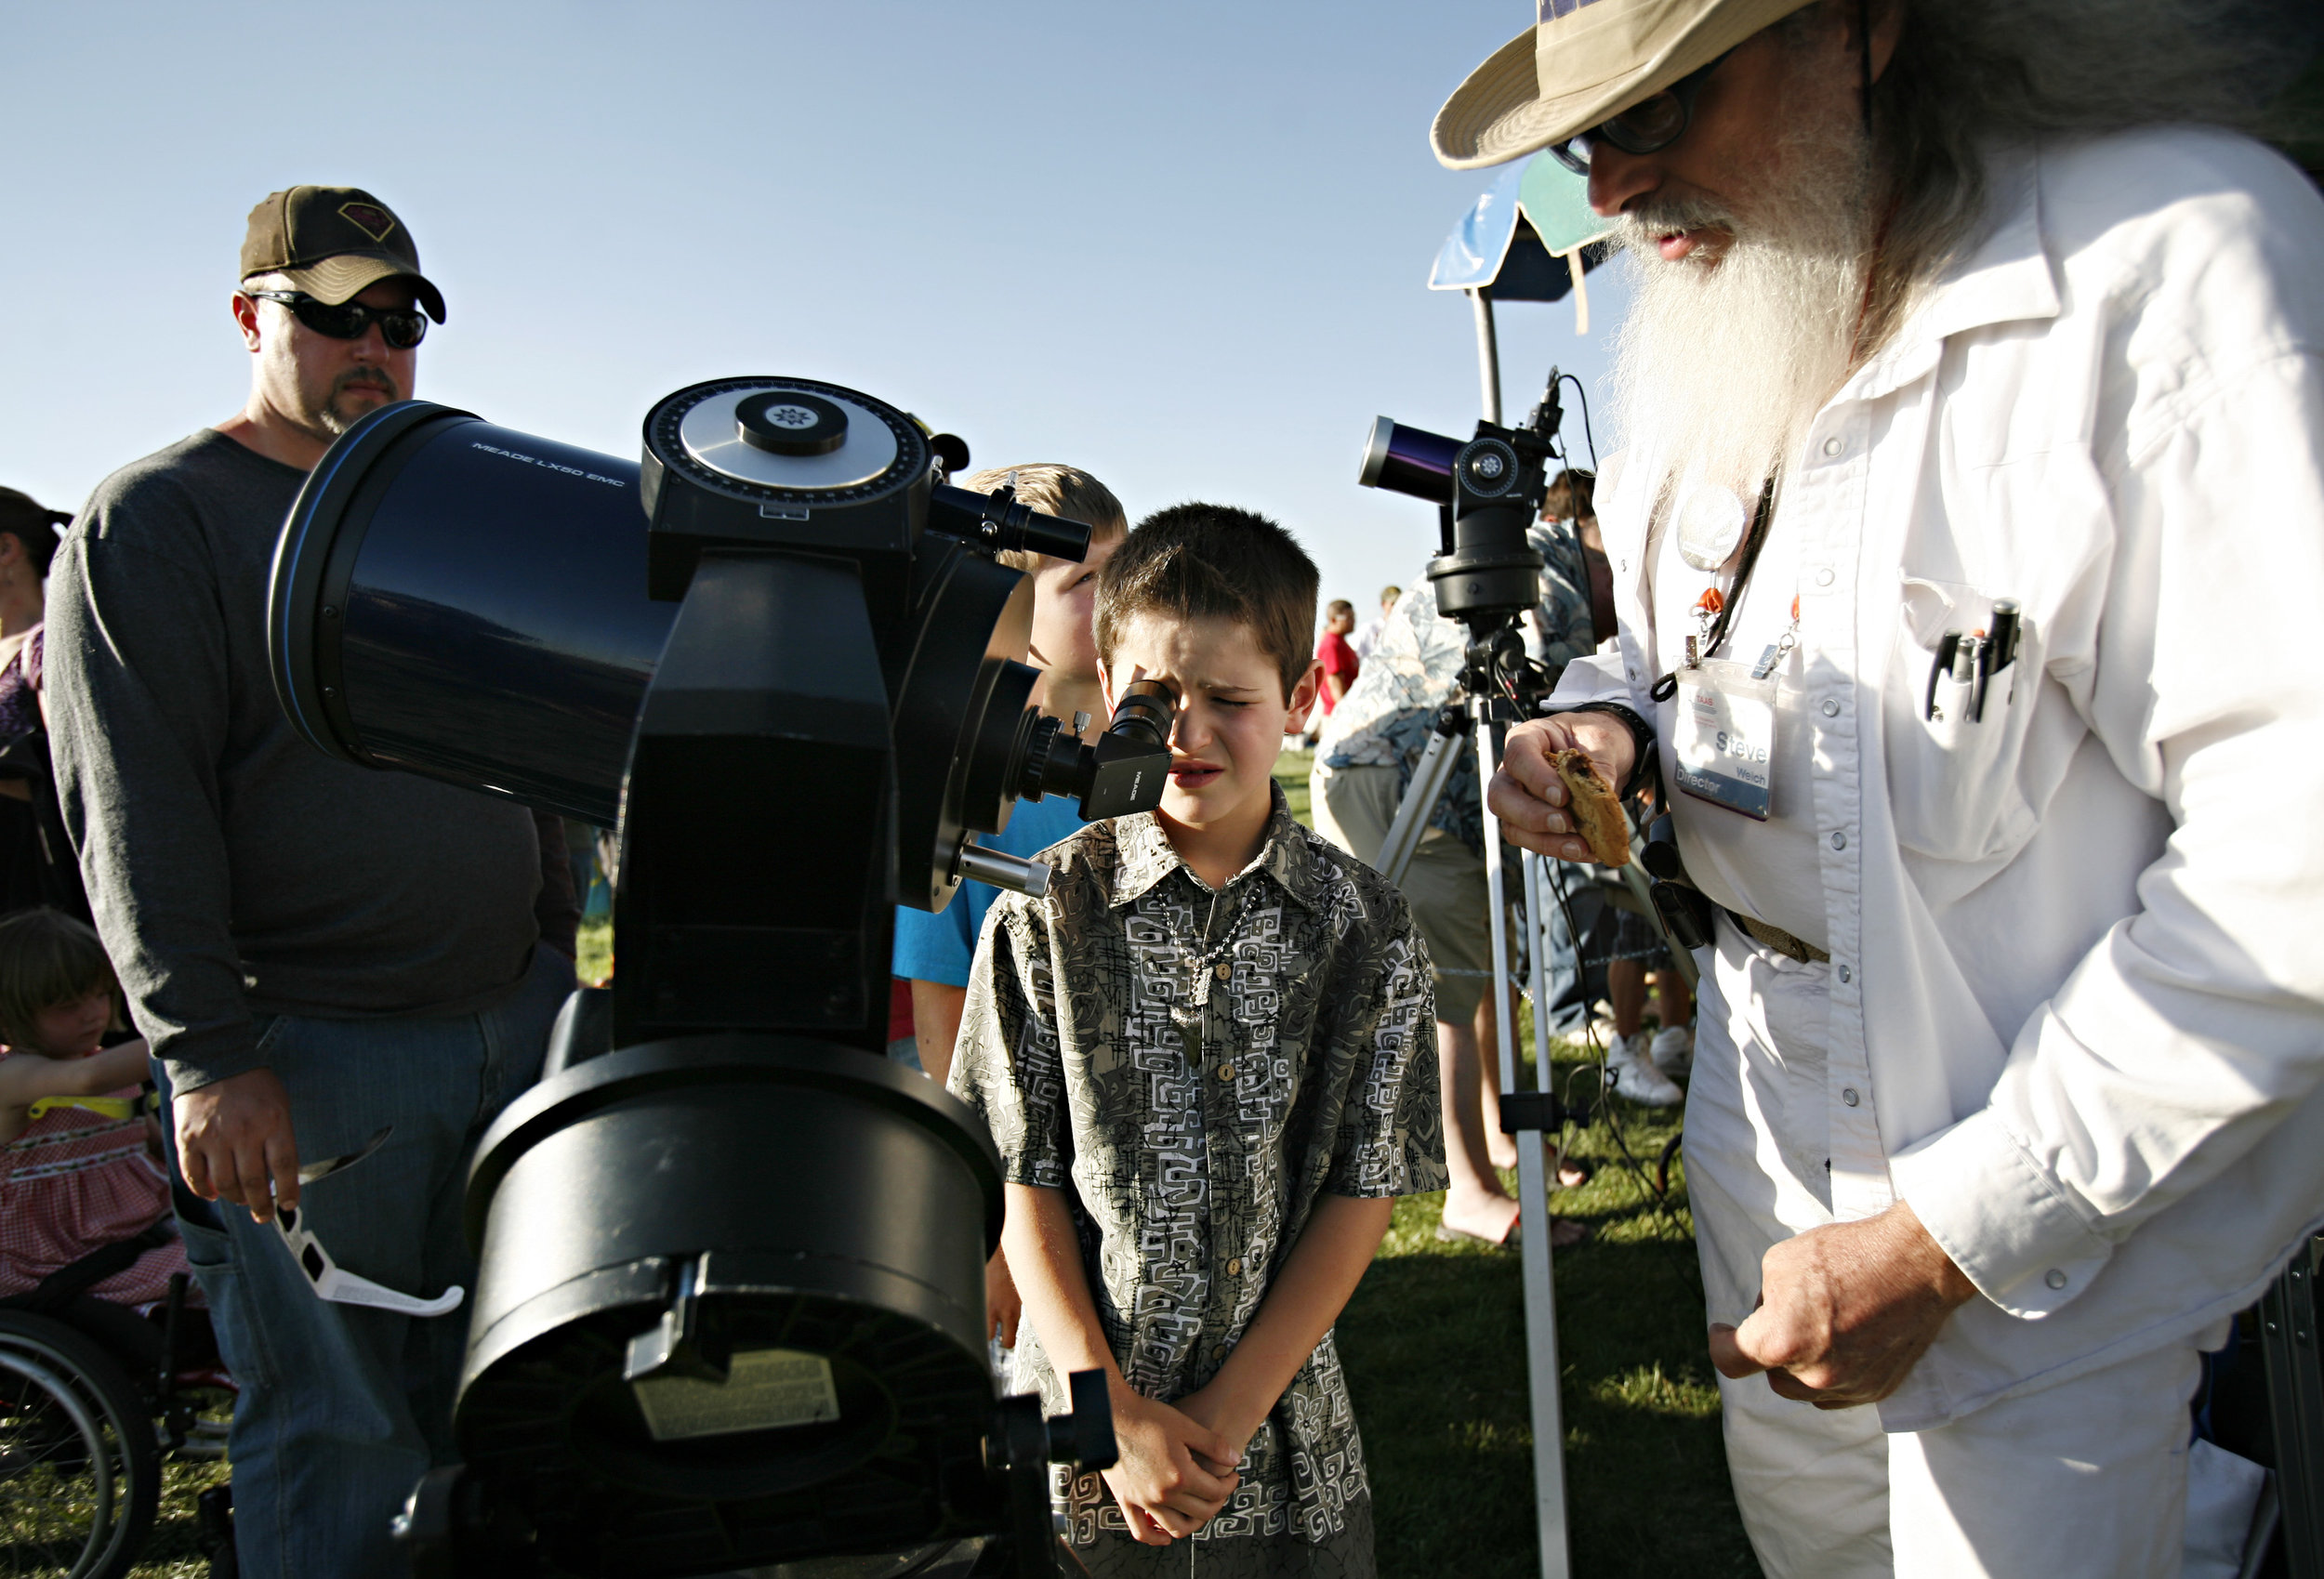 Xavier Martin, 8, looks at the sun through a telescope manned by TAAS member Steve Welch, at right, during the annular solar eclipse viewing party near the Hard Rock Casino Presents the Pavilion, Sunday, May 20, 2012, in Albuquerque, NM. (Morgan Petroski/Albuquerque Journal)